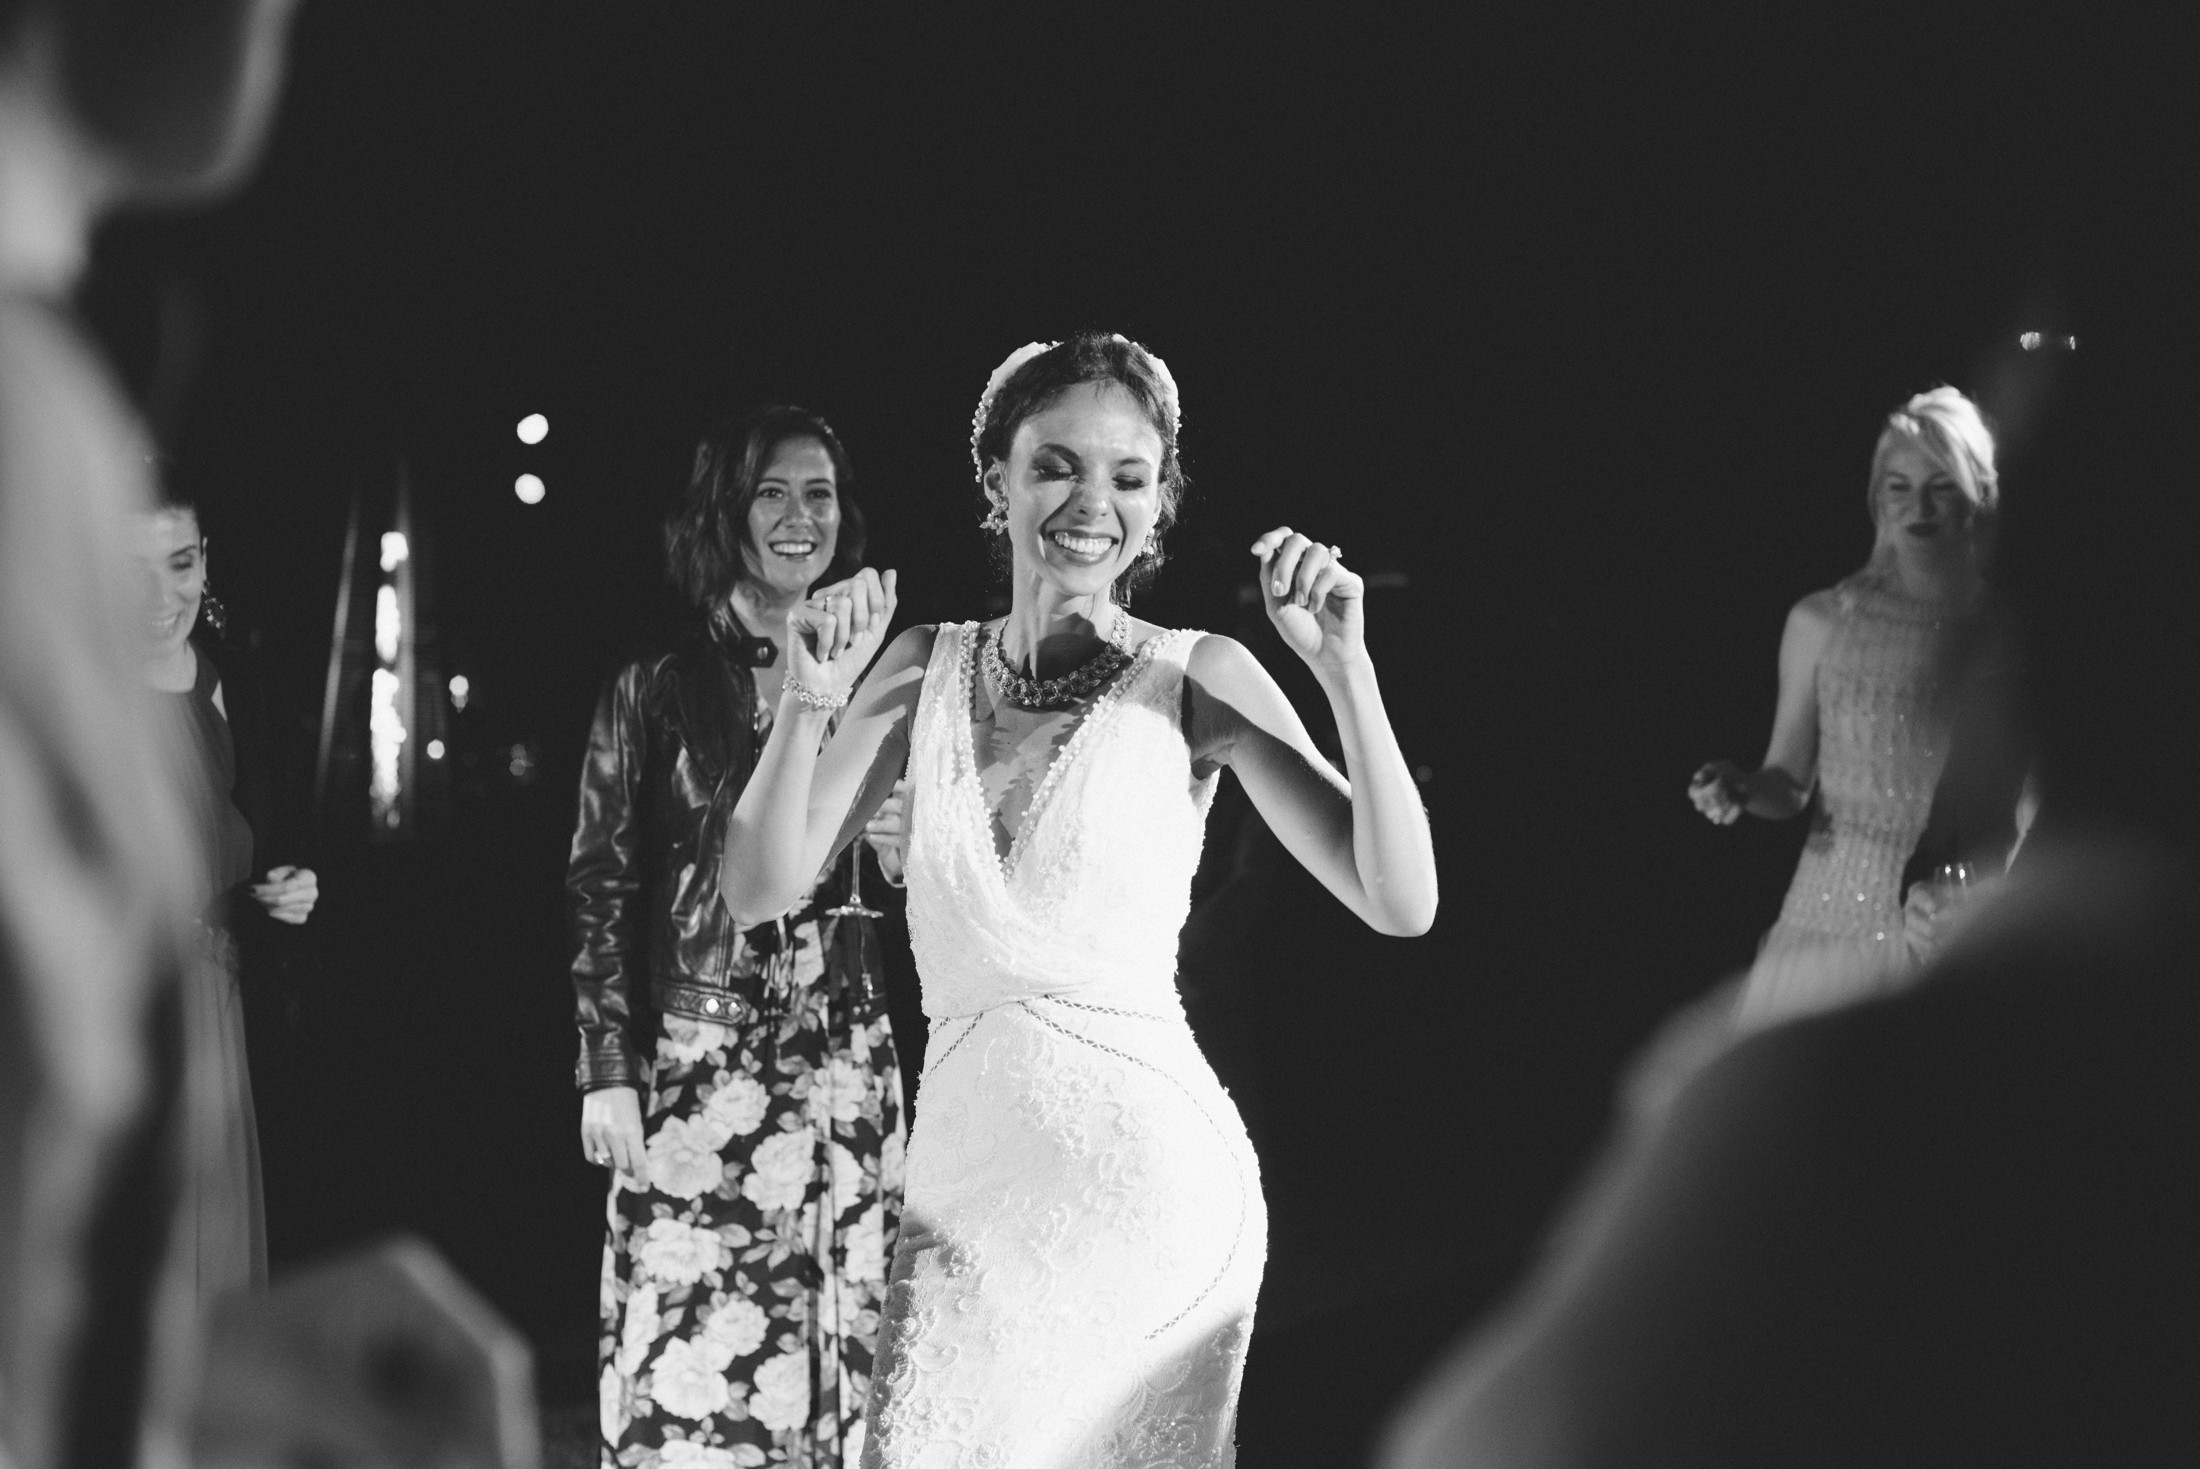 luxury wedding the bride dancing in black and white